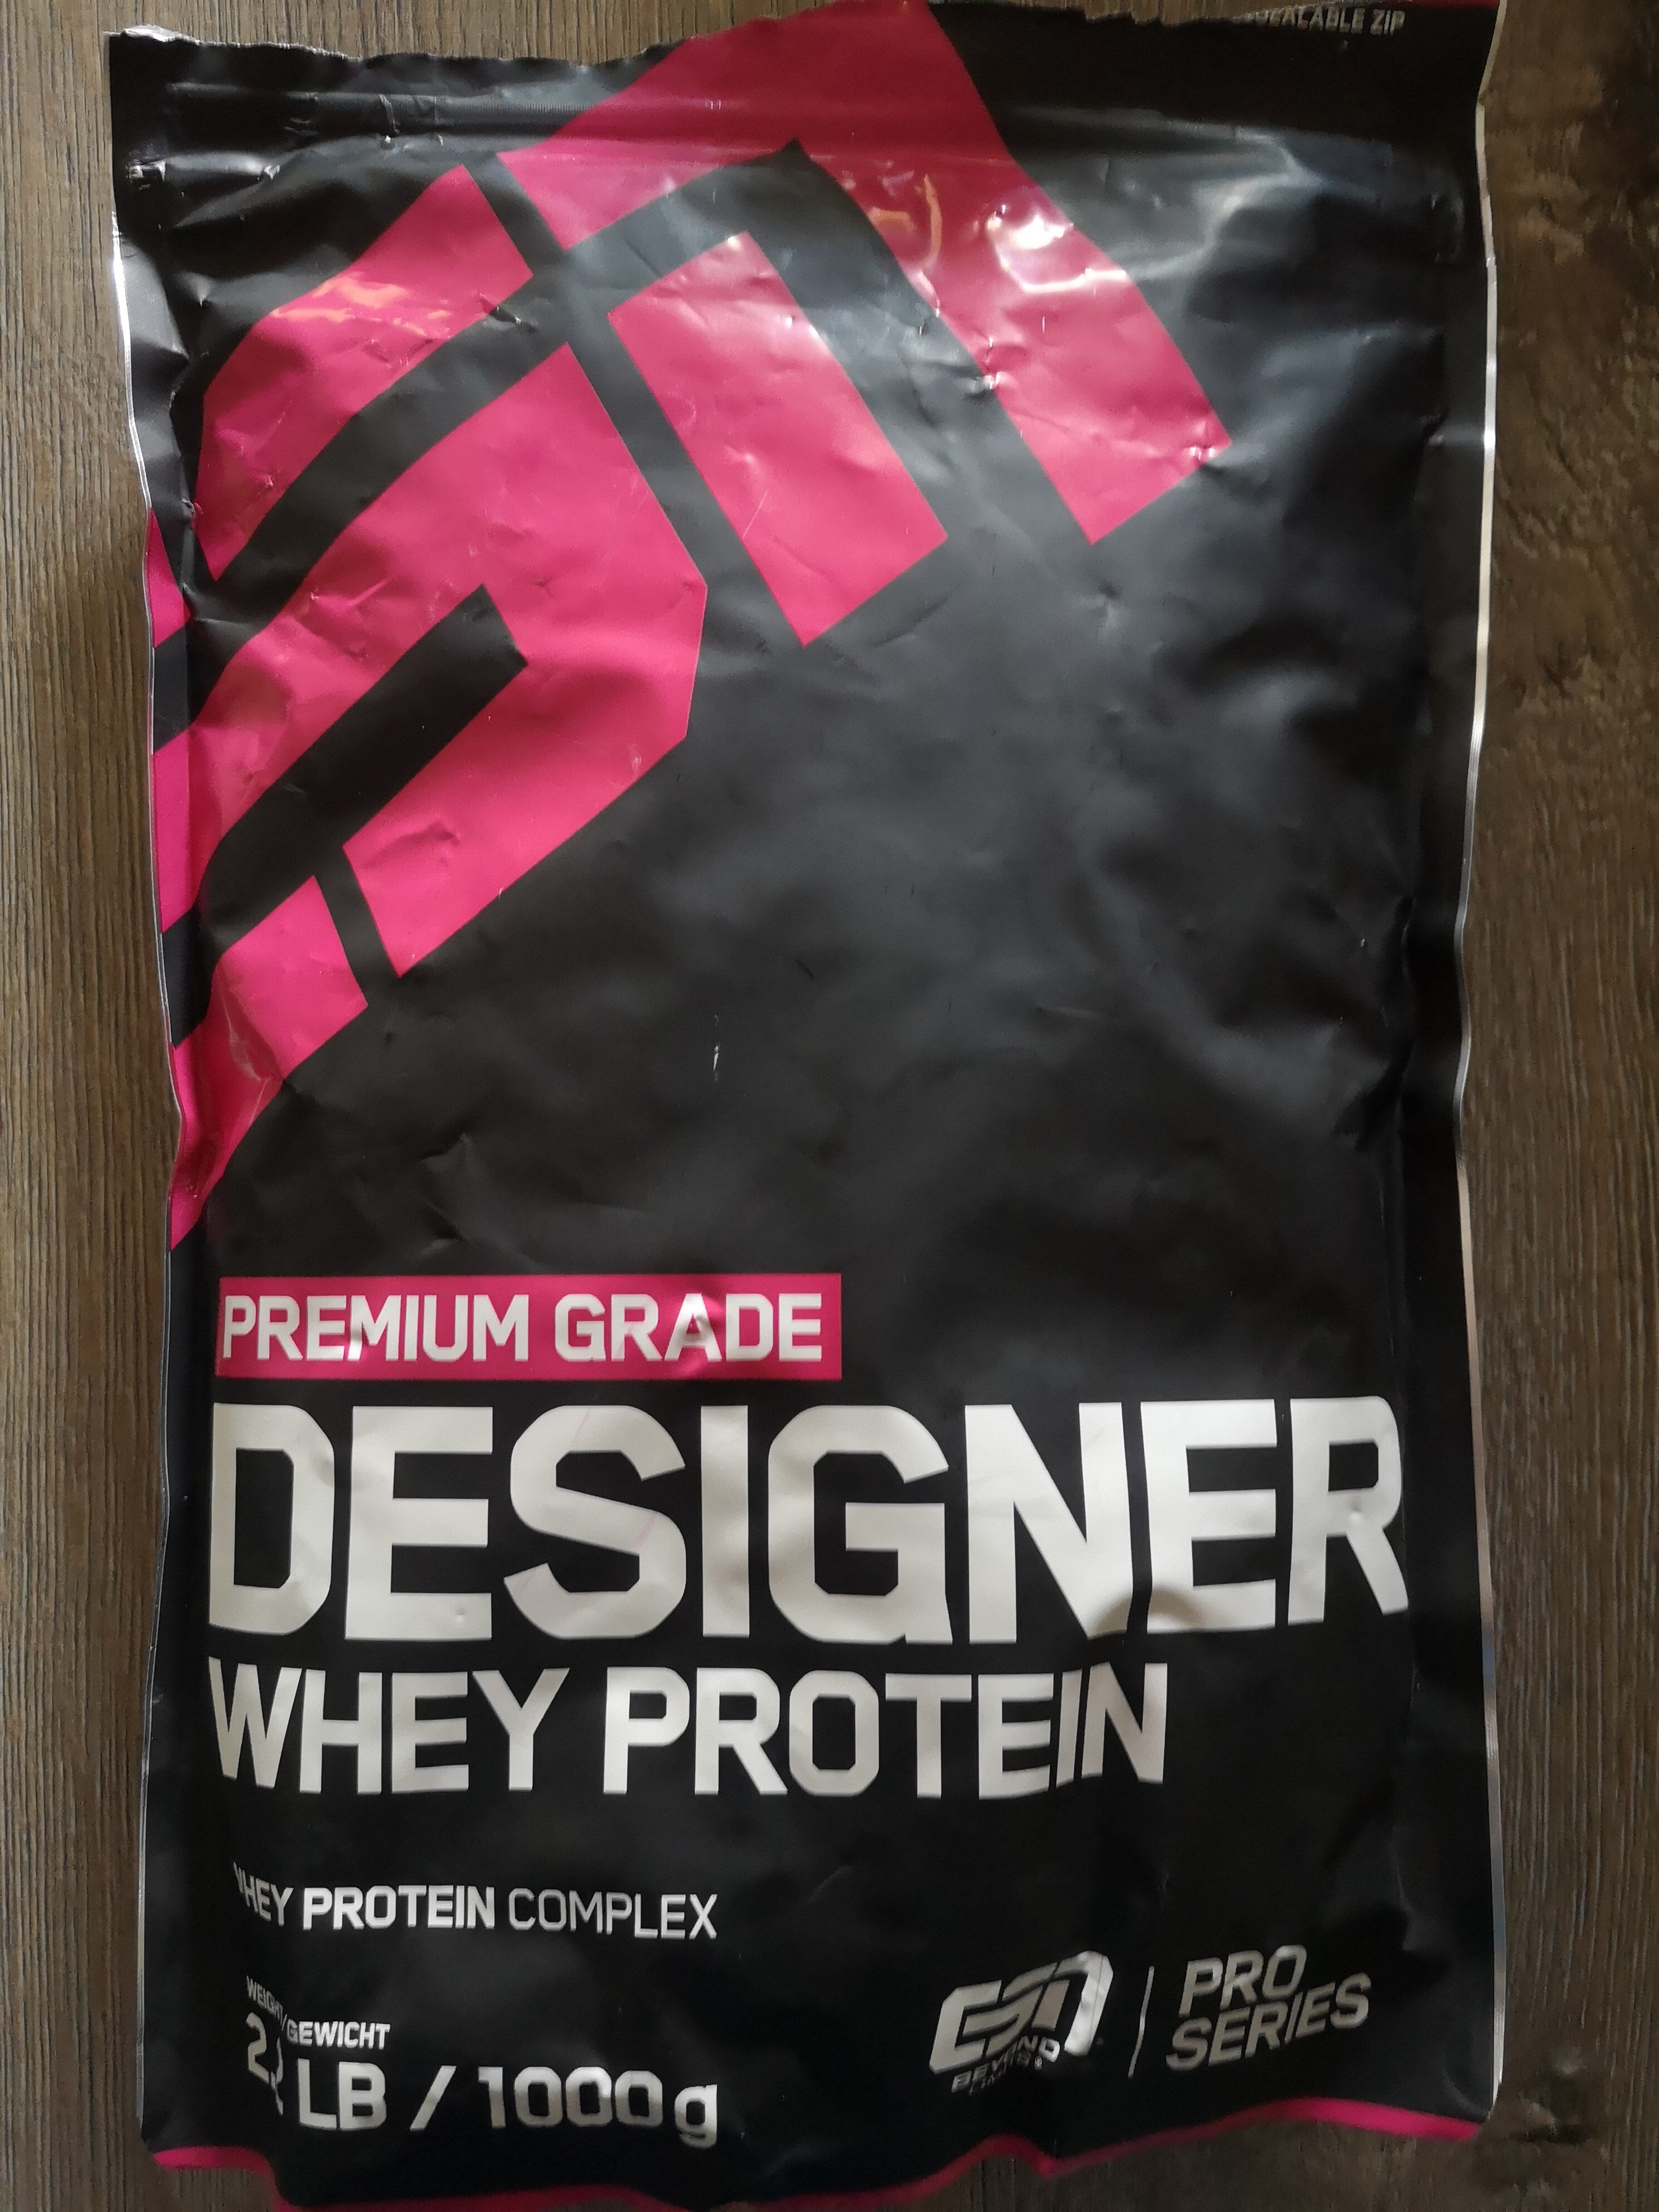 Designer Whey Protein - Product